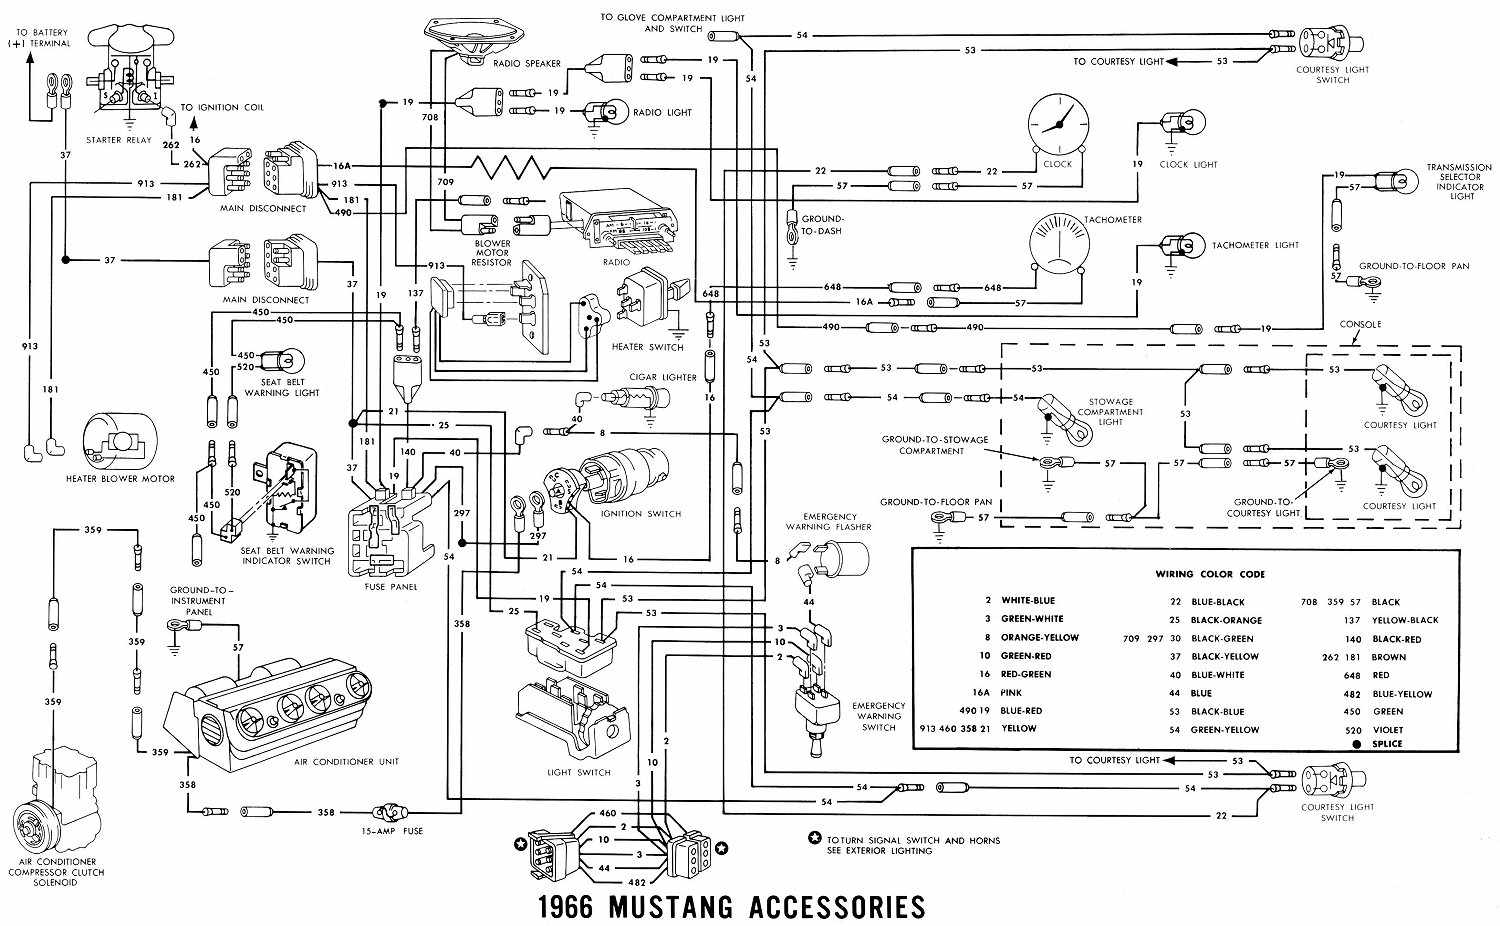 Alternator Wiring Diagram Ford Mustang Library 1970 1971 Data Schema U2022 Rh Serasa Co